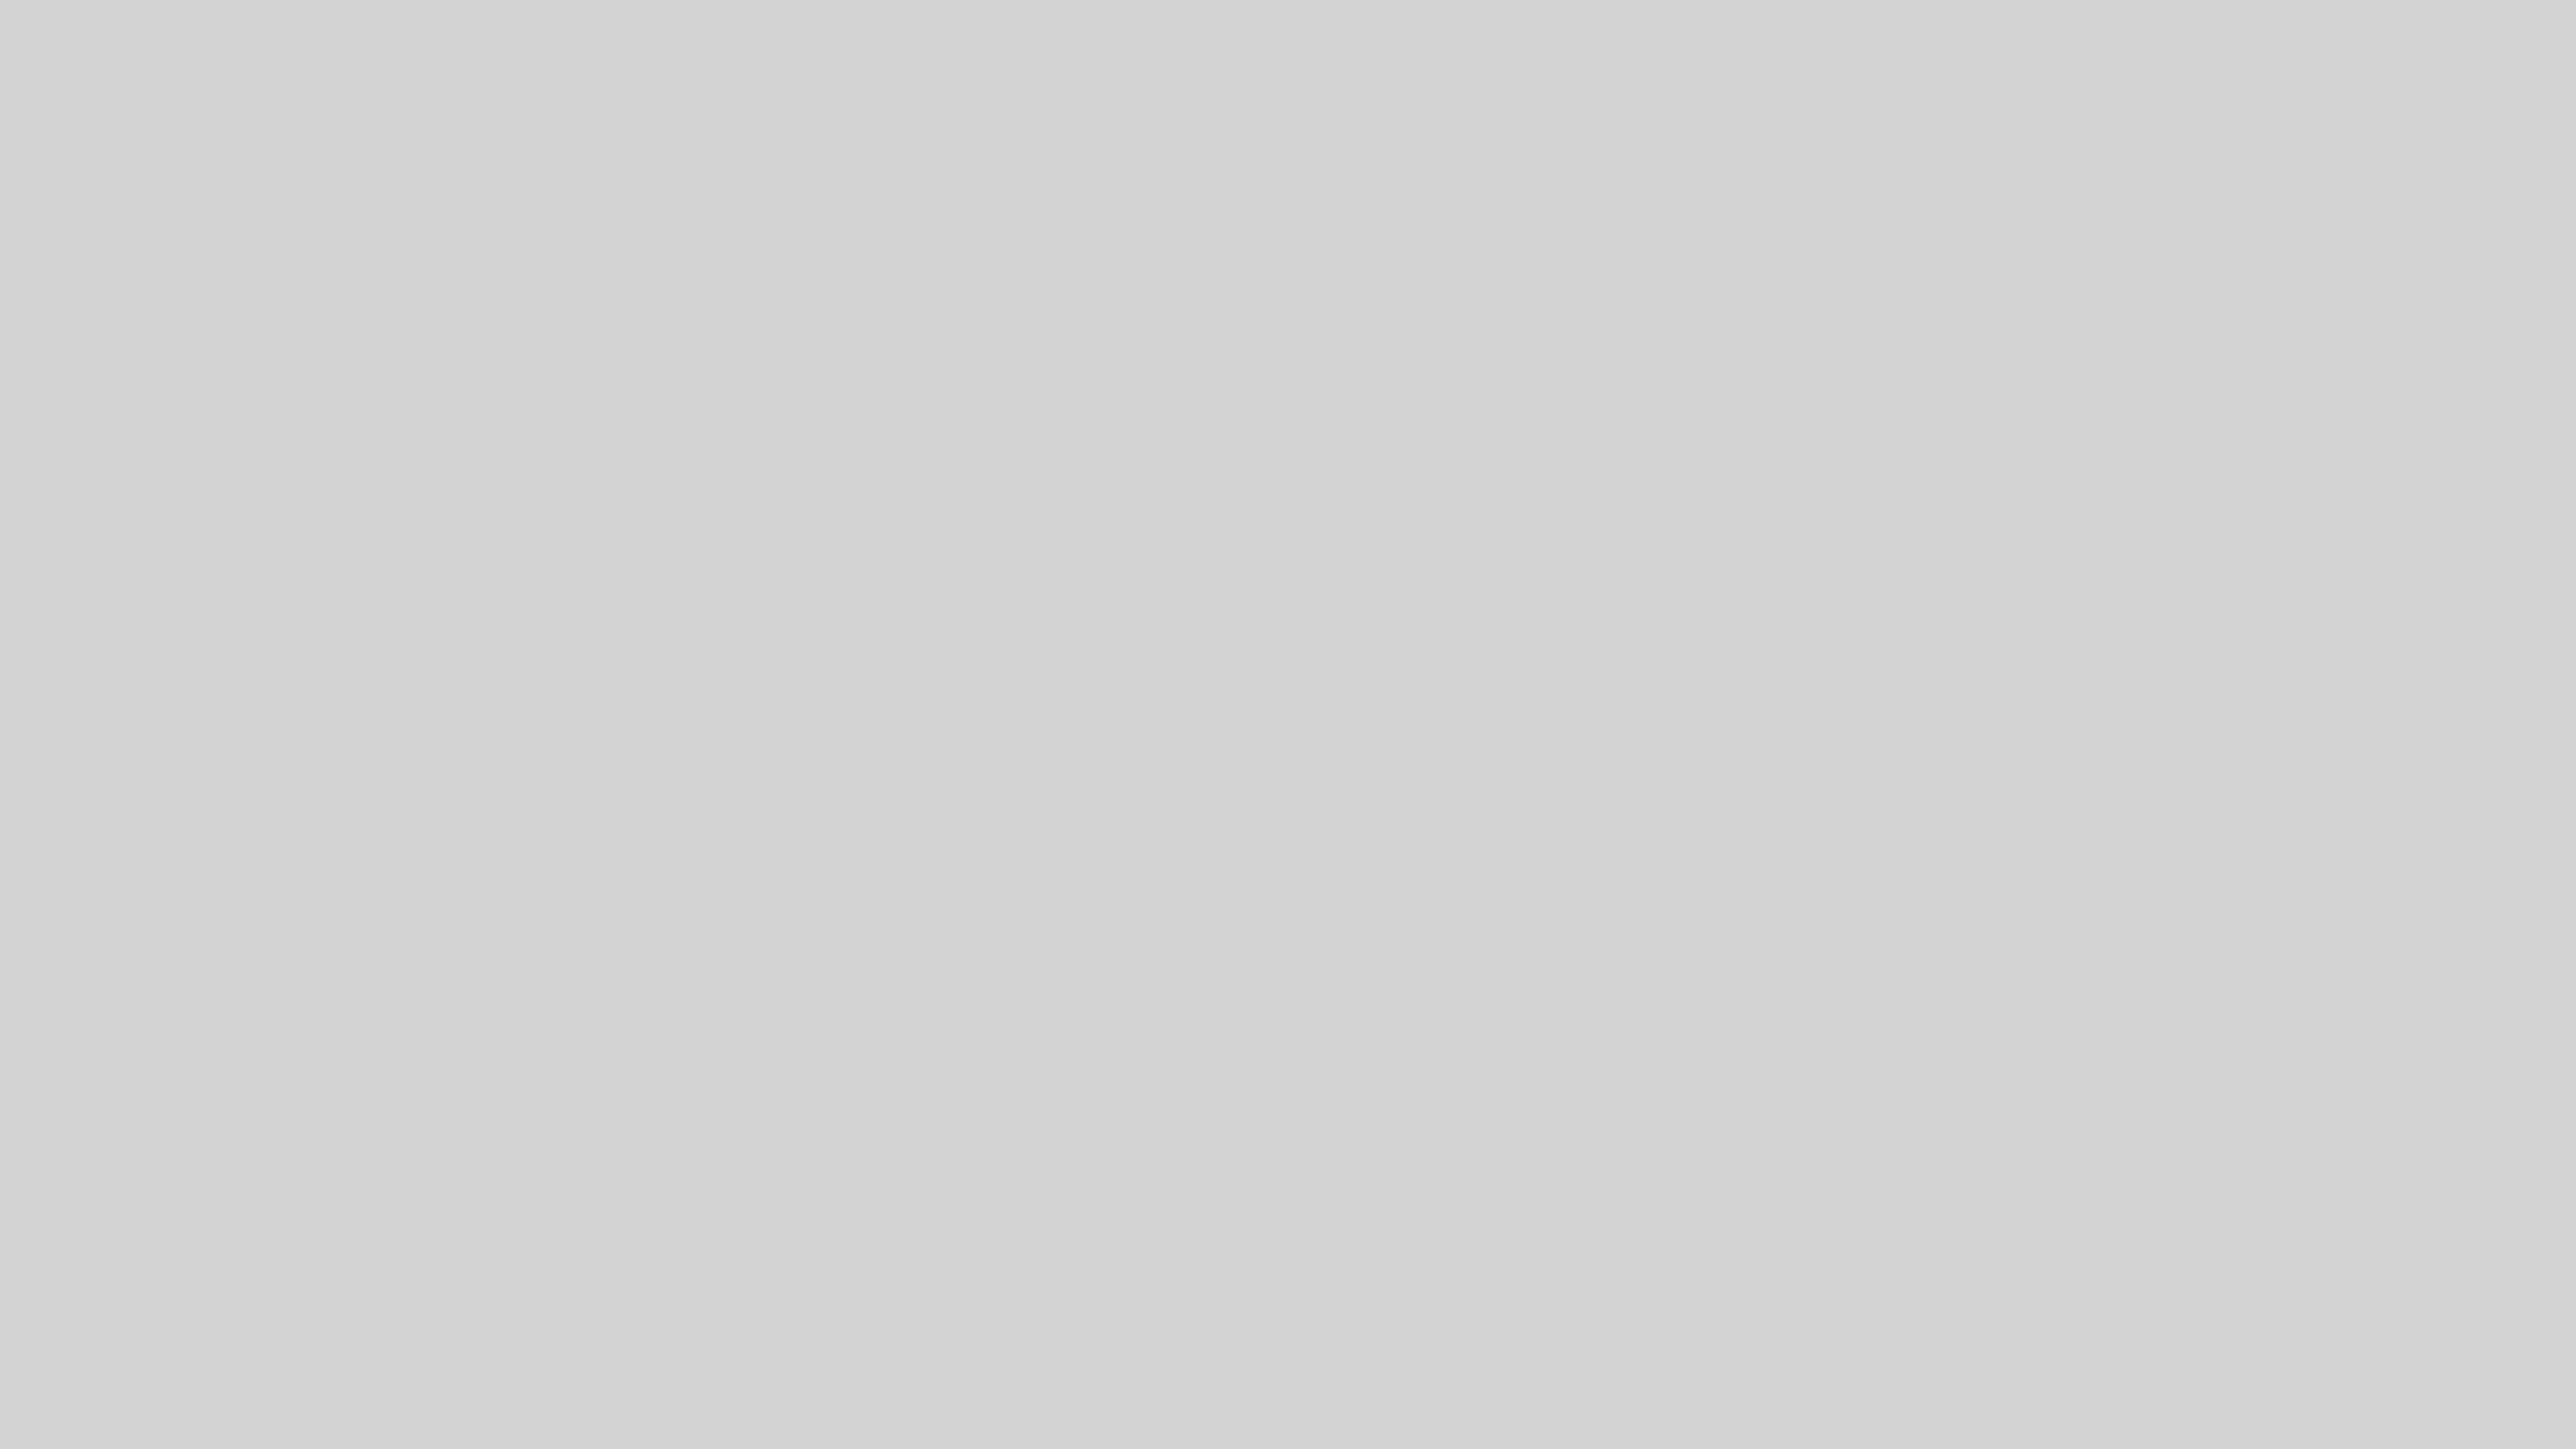 5120x2880 Light Gray Solid Color Background